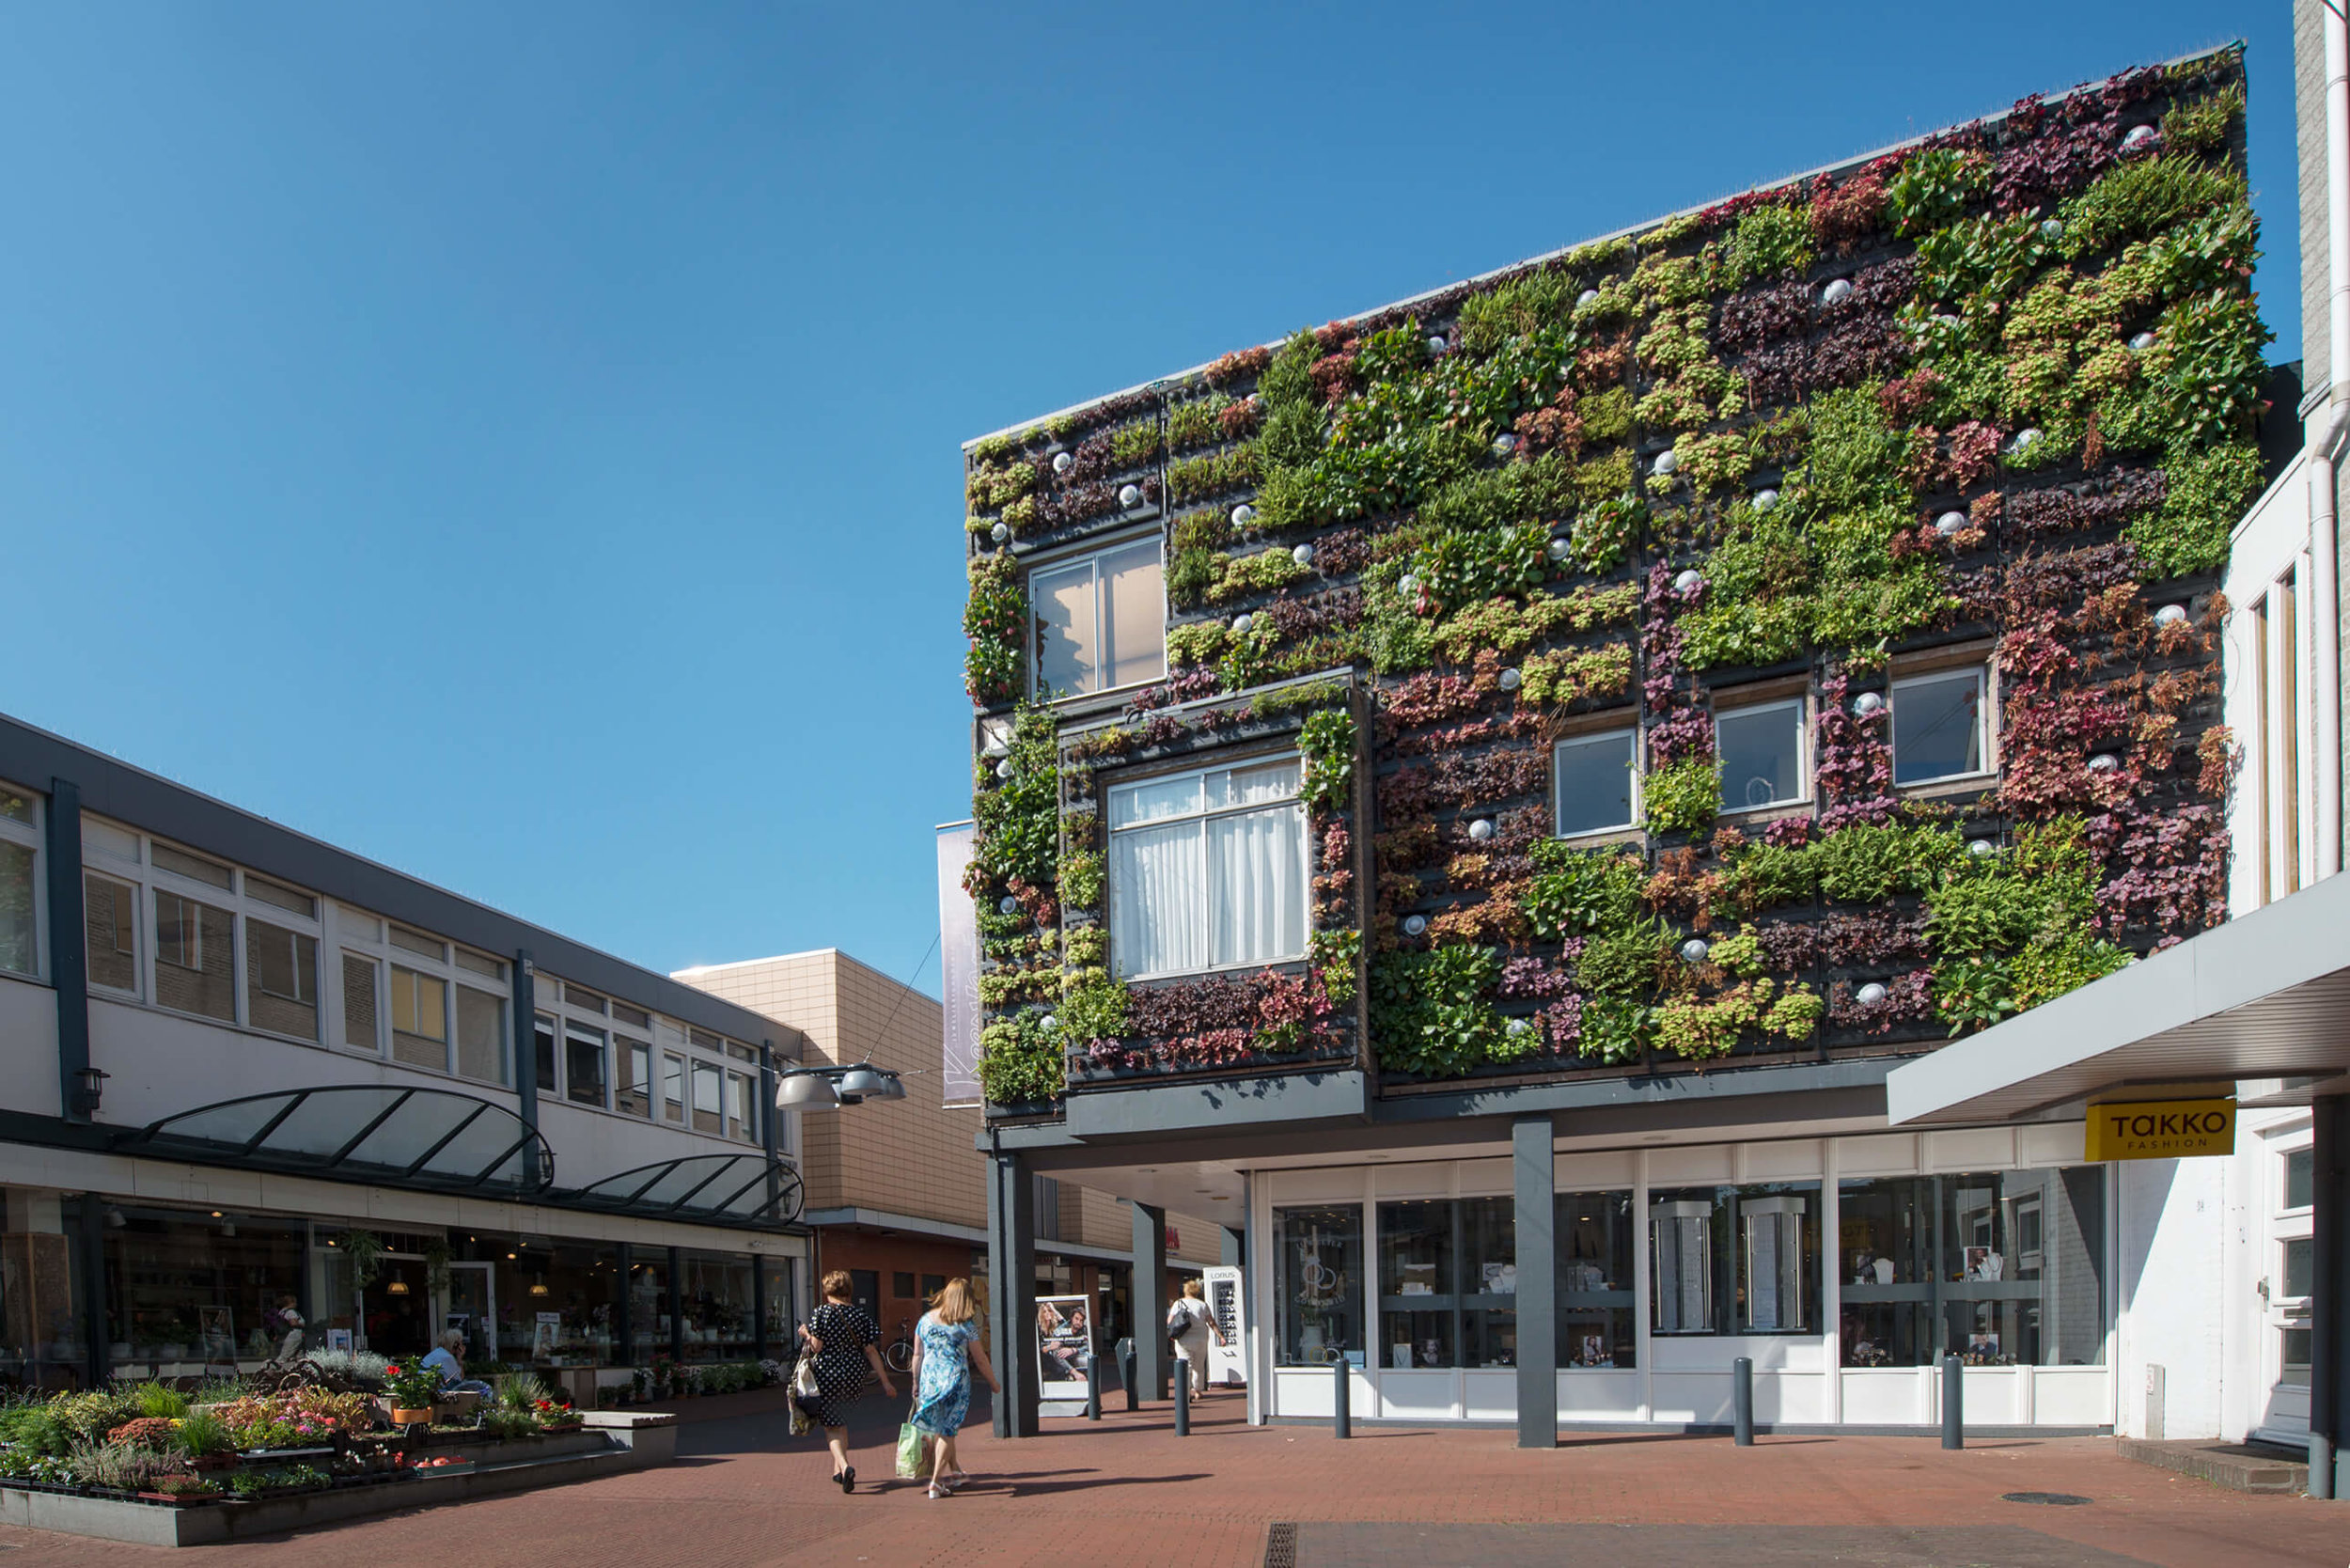 Custom Living Wall for Building Exterior - Veghel, Netherlands